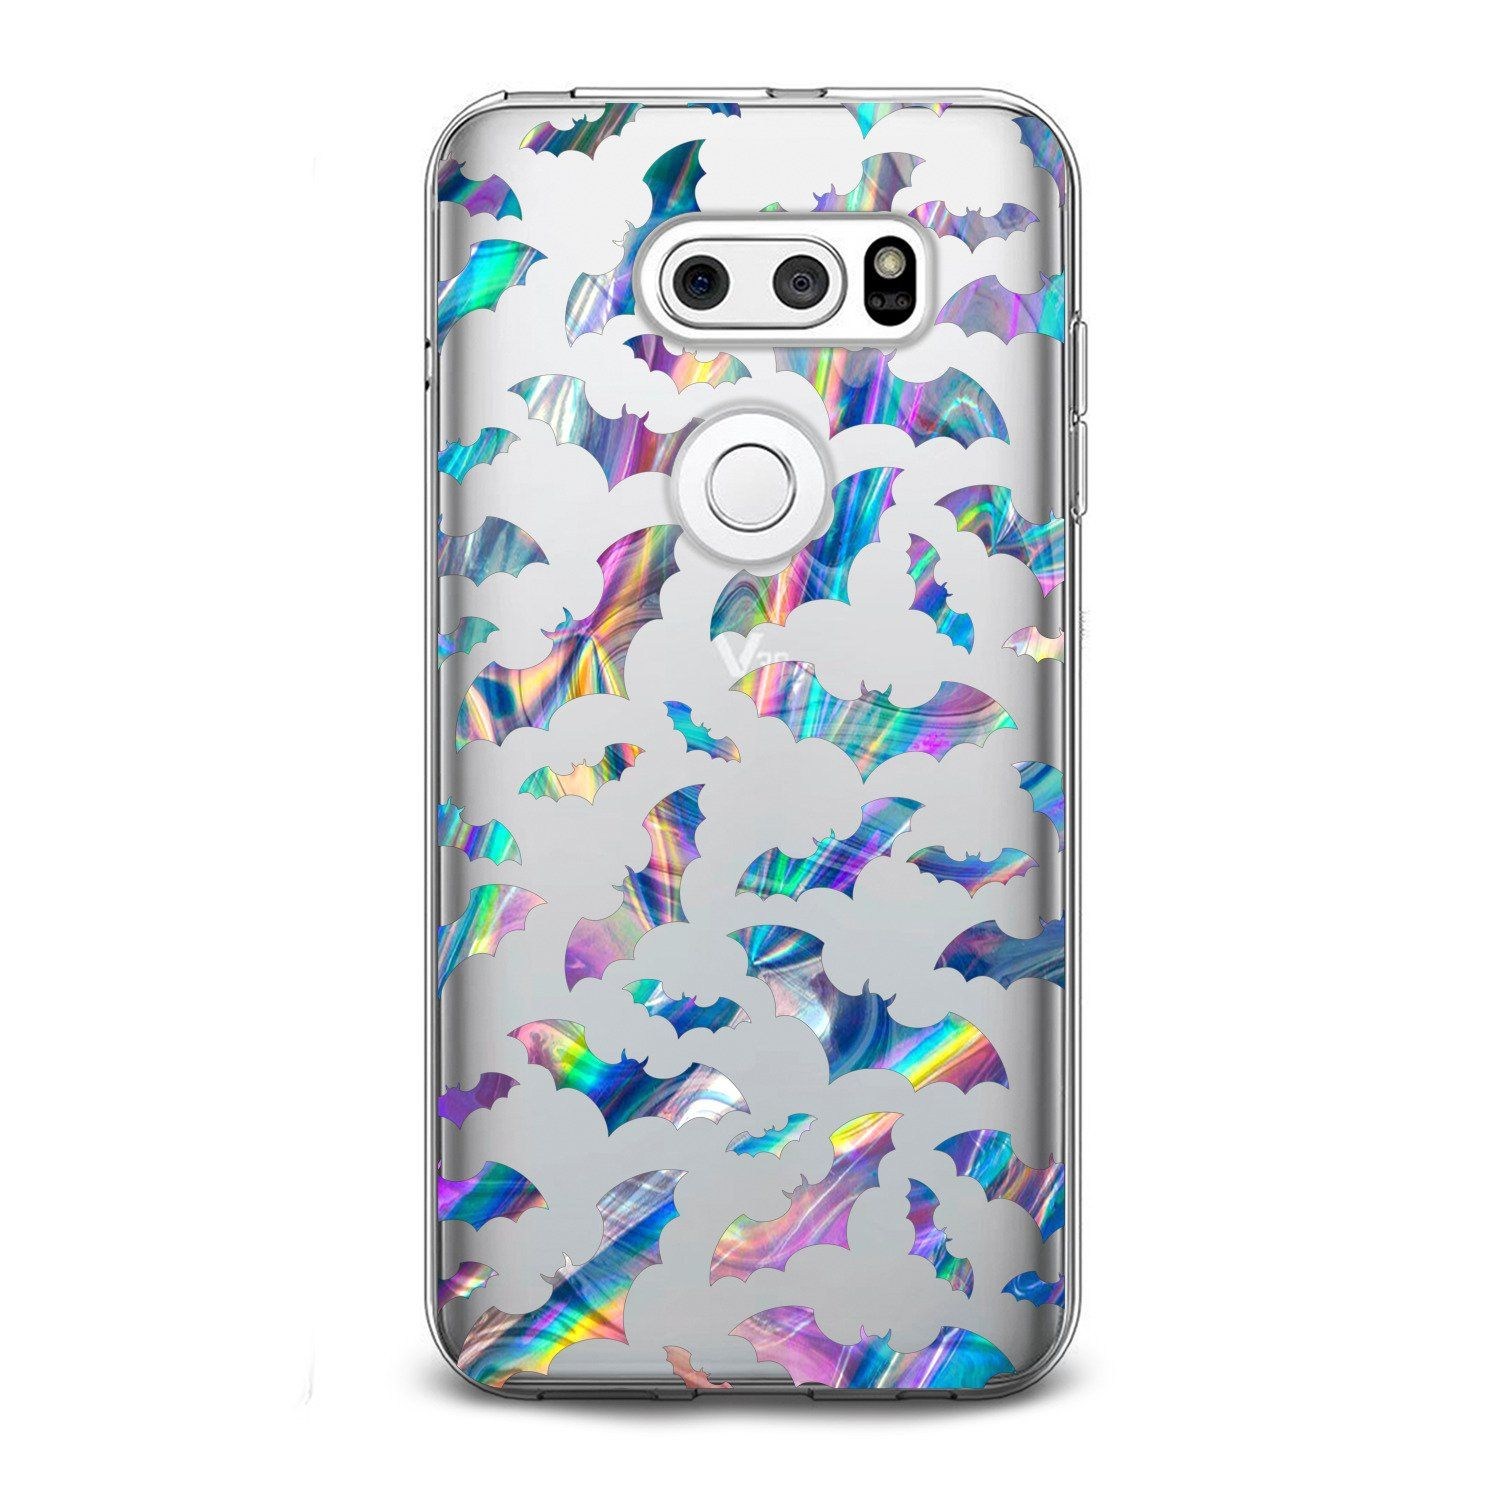 Lex Altern Tpu Silicone Lg Case Colorful Bat Lg Cases Case Phone Cases